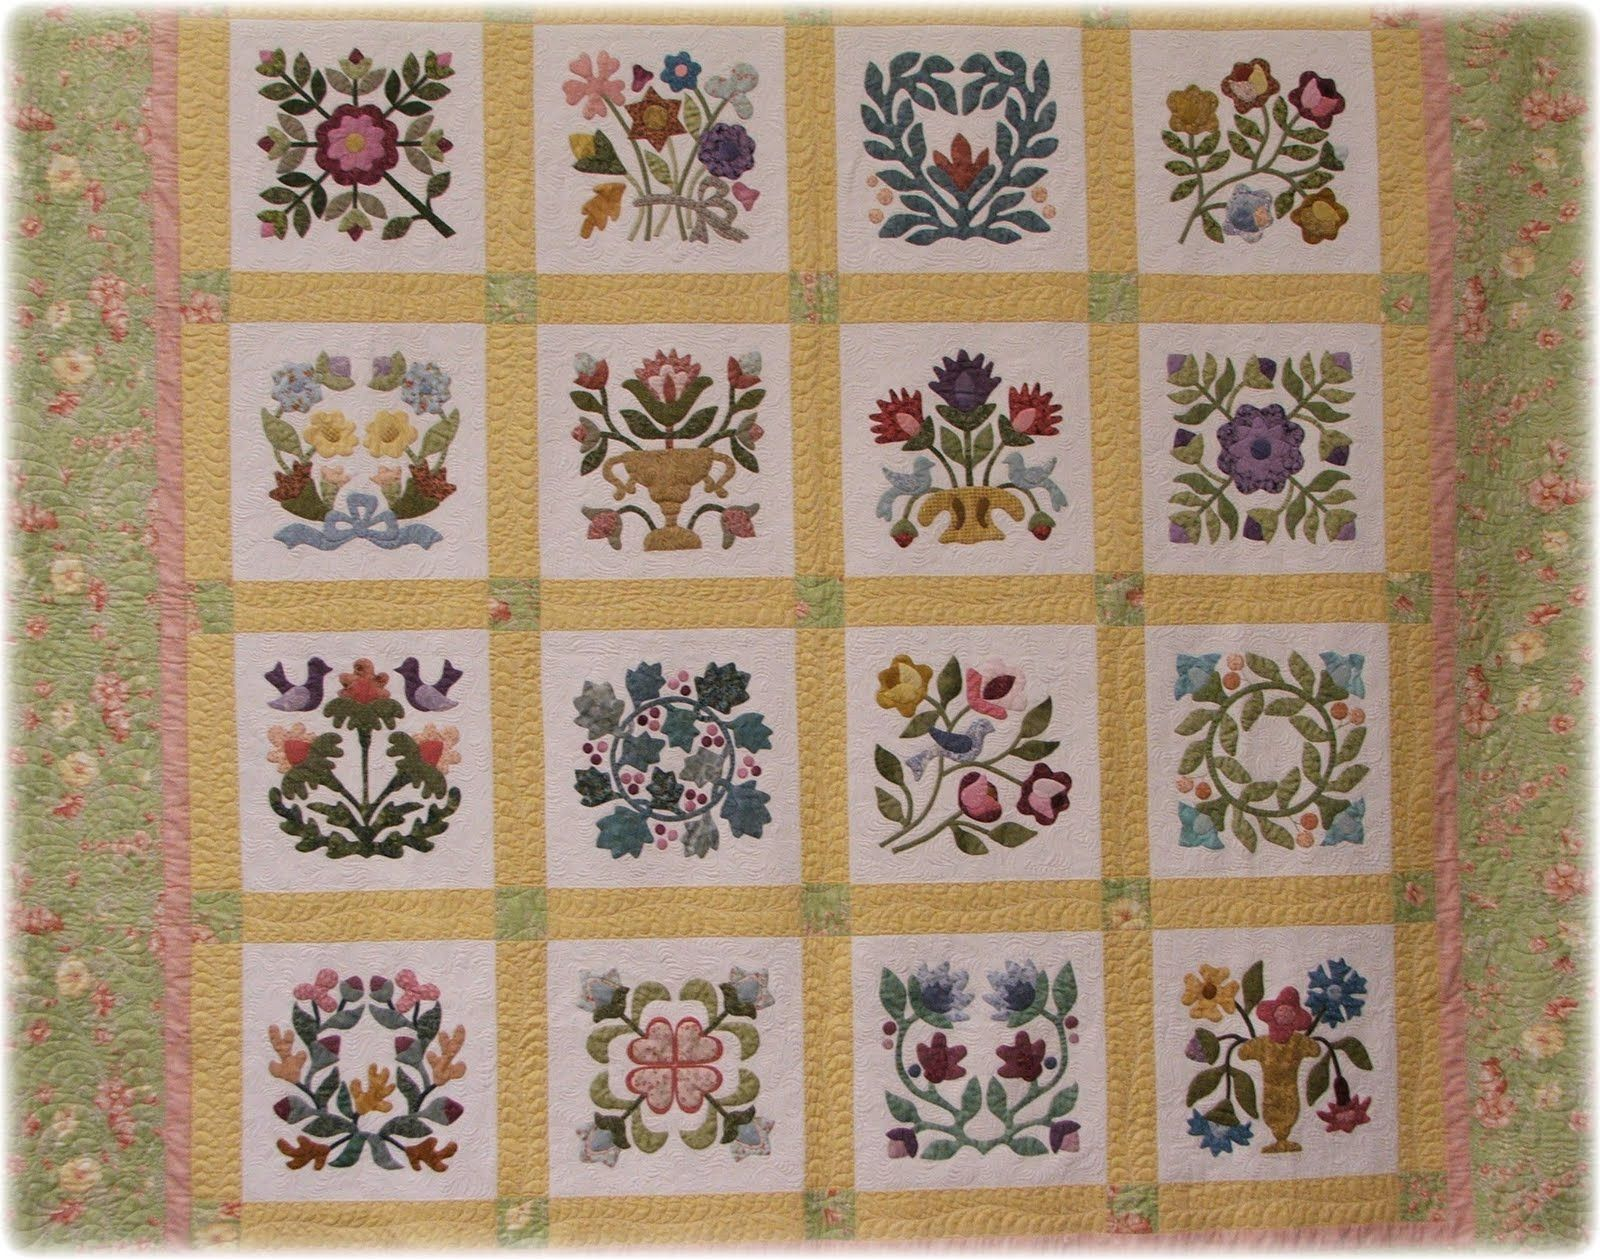 The Monomaniacal Quilter More Shipshewana Quilt Show Crafts29